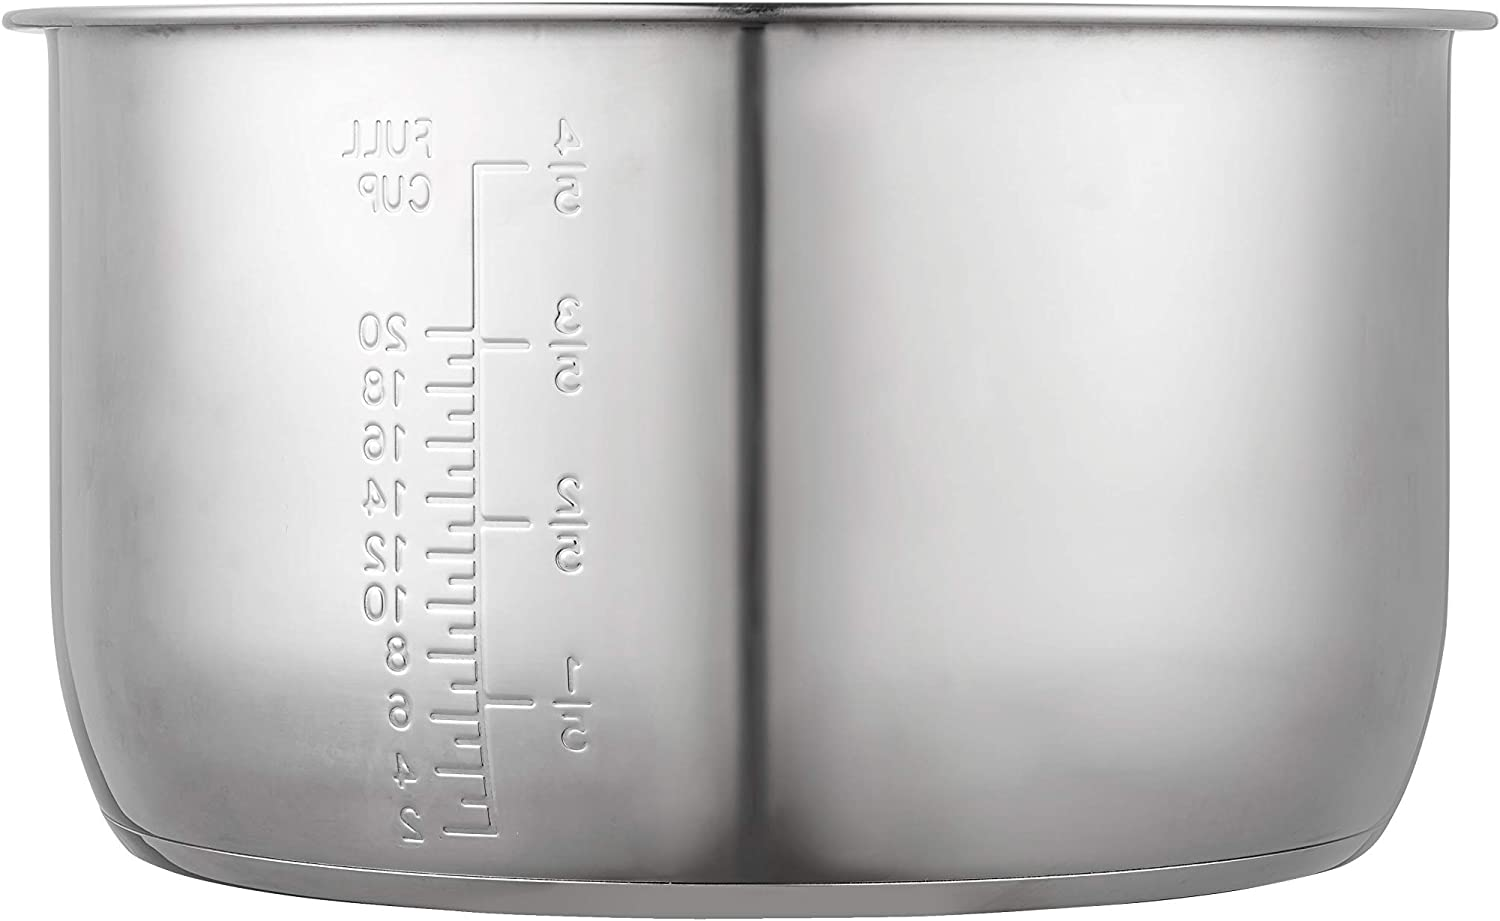 """GJS Gourmet Stainless Steel Inner Pot Compatible with 10 Quart Harvest Cookware Pressure Pro Cooker Model YBW100P (Stainless Steel, 10 Quart)"". This pot is not created or sold by Harvest Cookware."